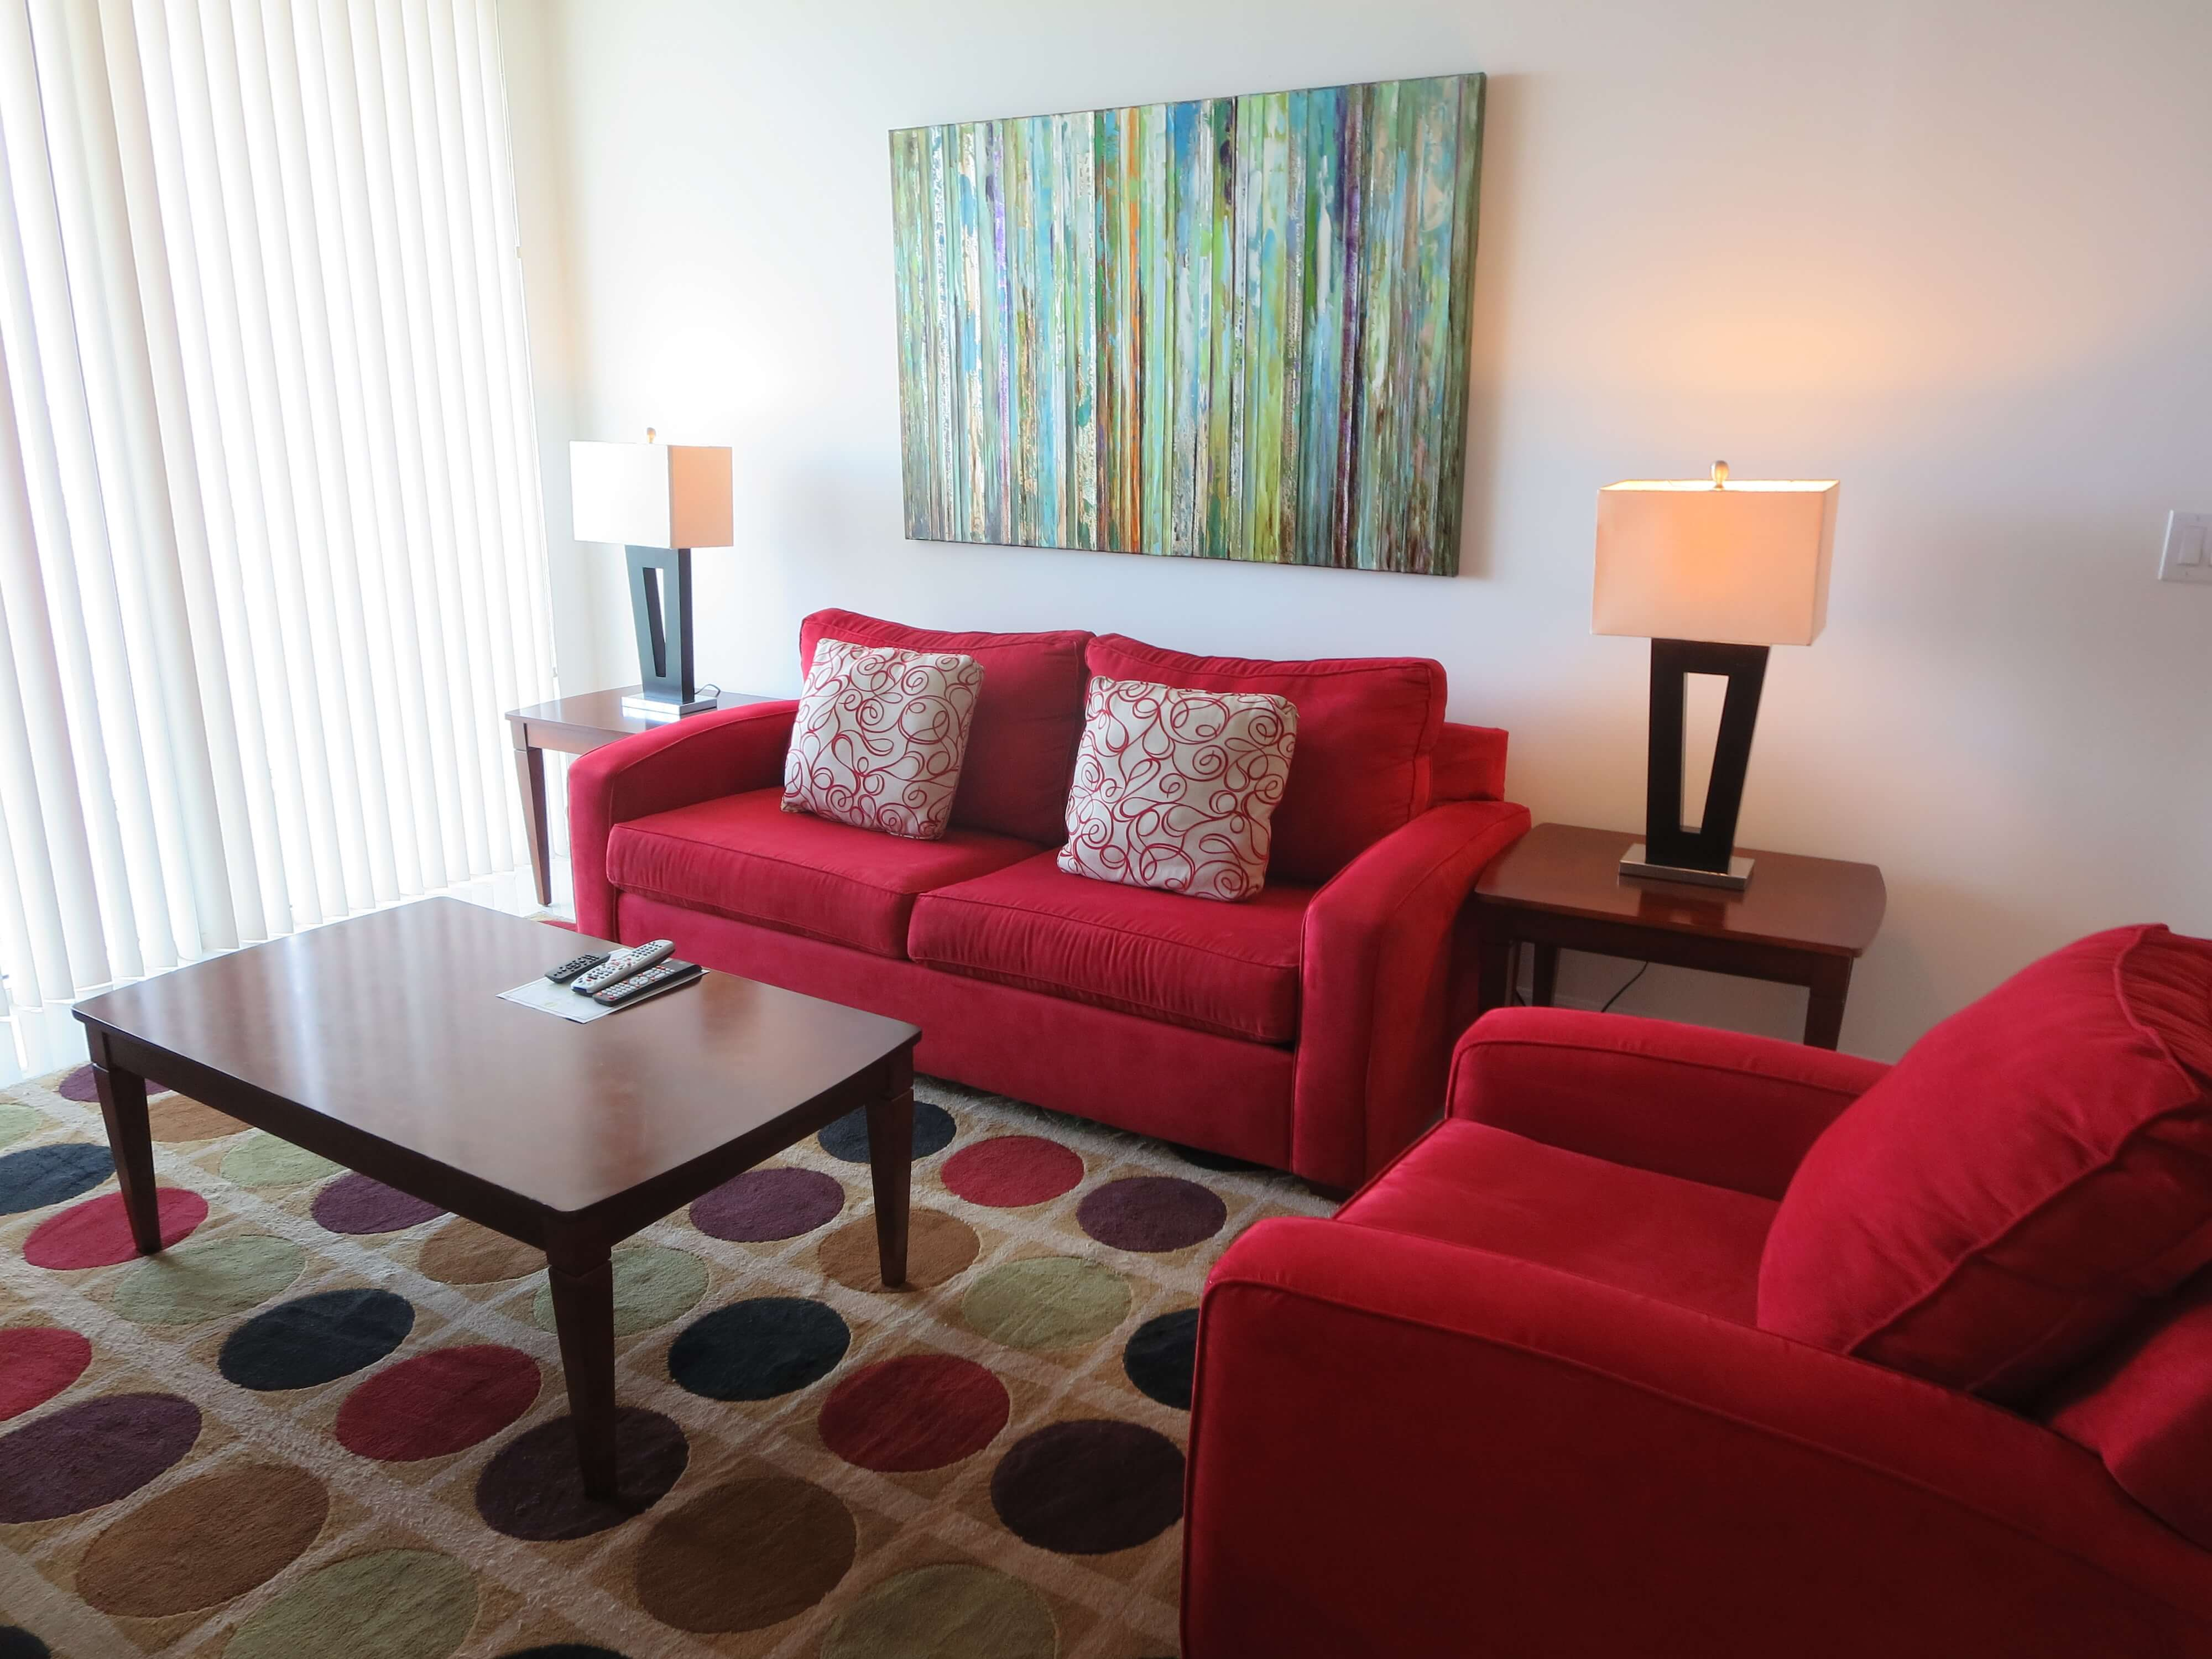 10 furnished 2 bedroom apartment for rent in miami lakes miami area